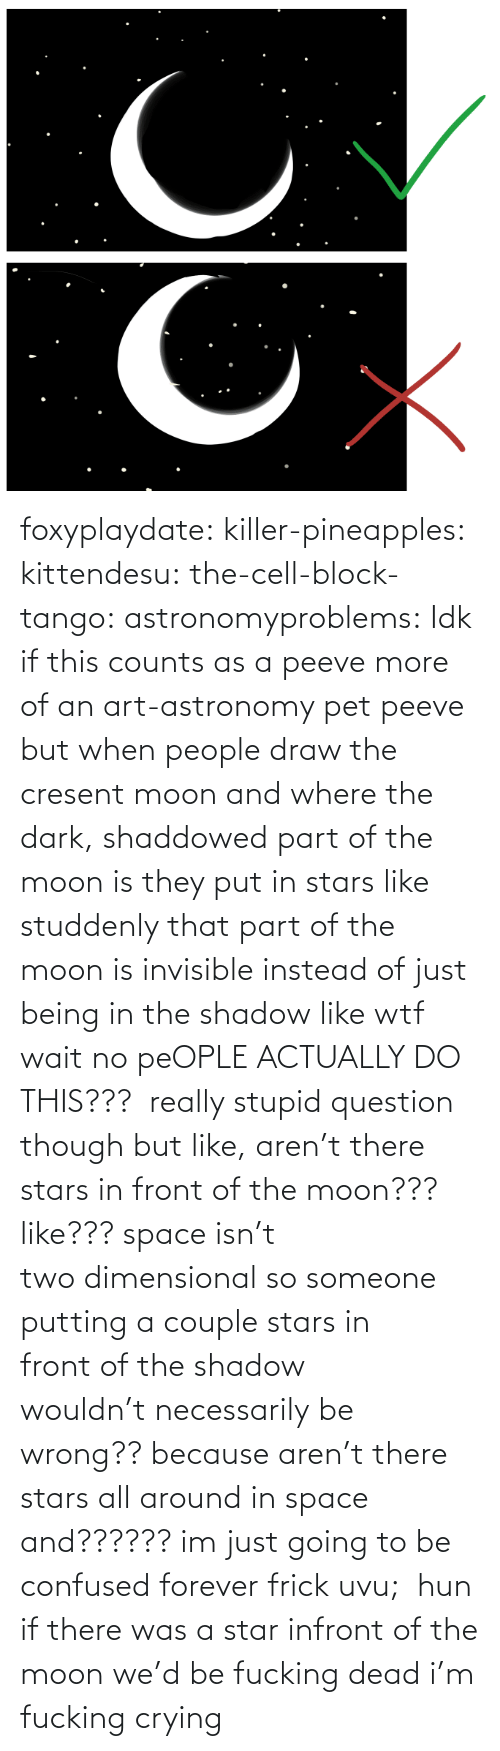 Confused, Crying, and Frick: foxyplaydate:  killer-pineapples:  kittendesu:  the-cell-block-tango:  astronomyproblems:  Idk if this counts as a peeve more of an art-astronomy pet peeve but when people draw the cresent moon and where the dark, shaddowed part of the moon is they put in stars like studdenly that part of the moon is invisible instead of just being in the shadow like wtf  wait no peOPLE ACTUALLY DO THIS???  really stupid question though but like, aren't there stars in front of the moon??? like??? space isn't twodimensionalso someone putting a couple starsin frontof the shadow wouldn'tnecessarilybe wrong?? because aren't there stars all around in space and?????? im just going to be confused forever frick uvu;  hun if there was a star infront of the moon we'd be fucking dead  i'm fucking crying